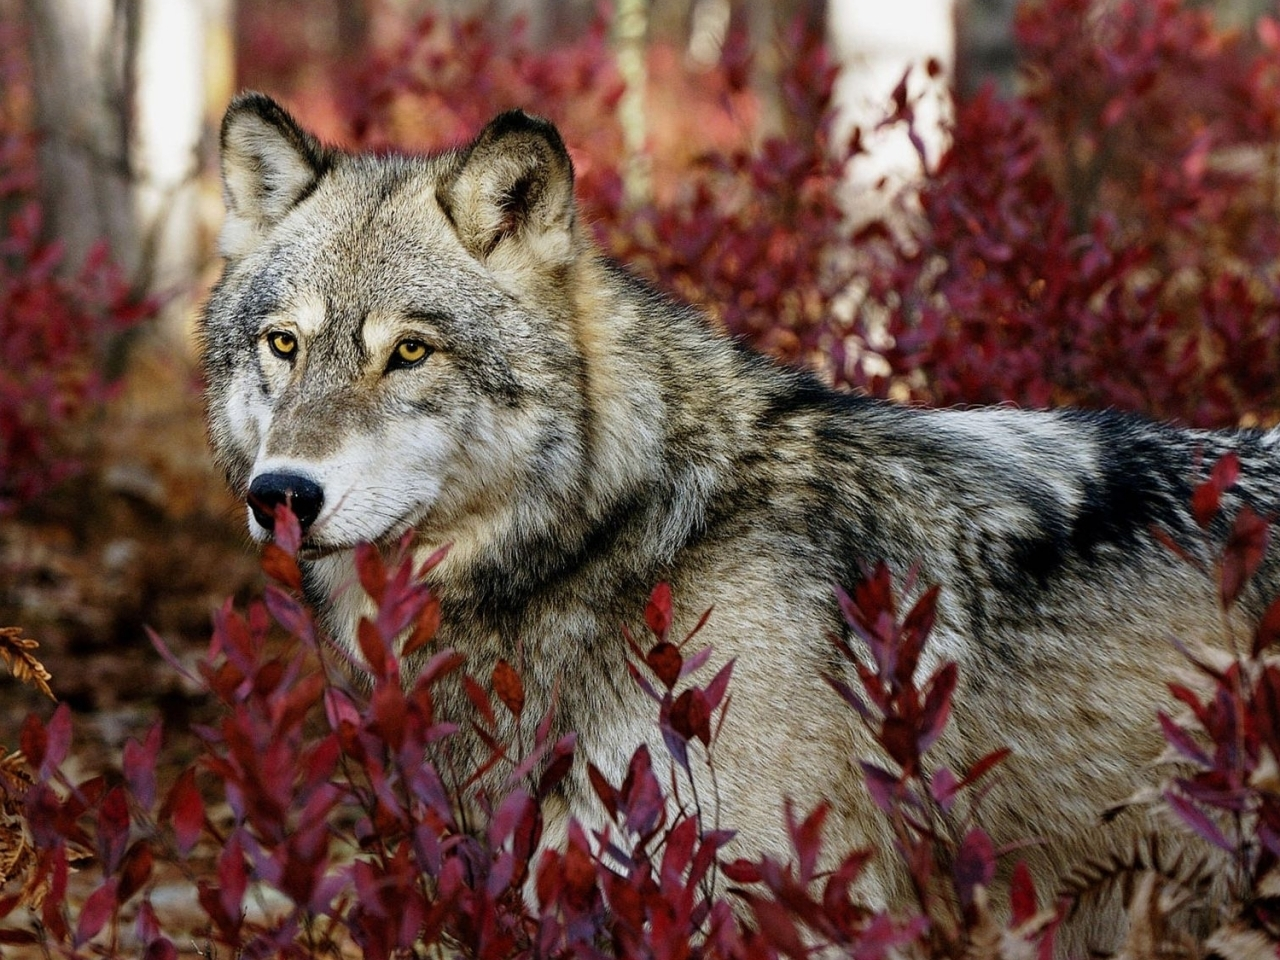 43512 download wallpaper Animals, Wolfs screensavers and pictures for free